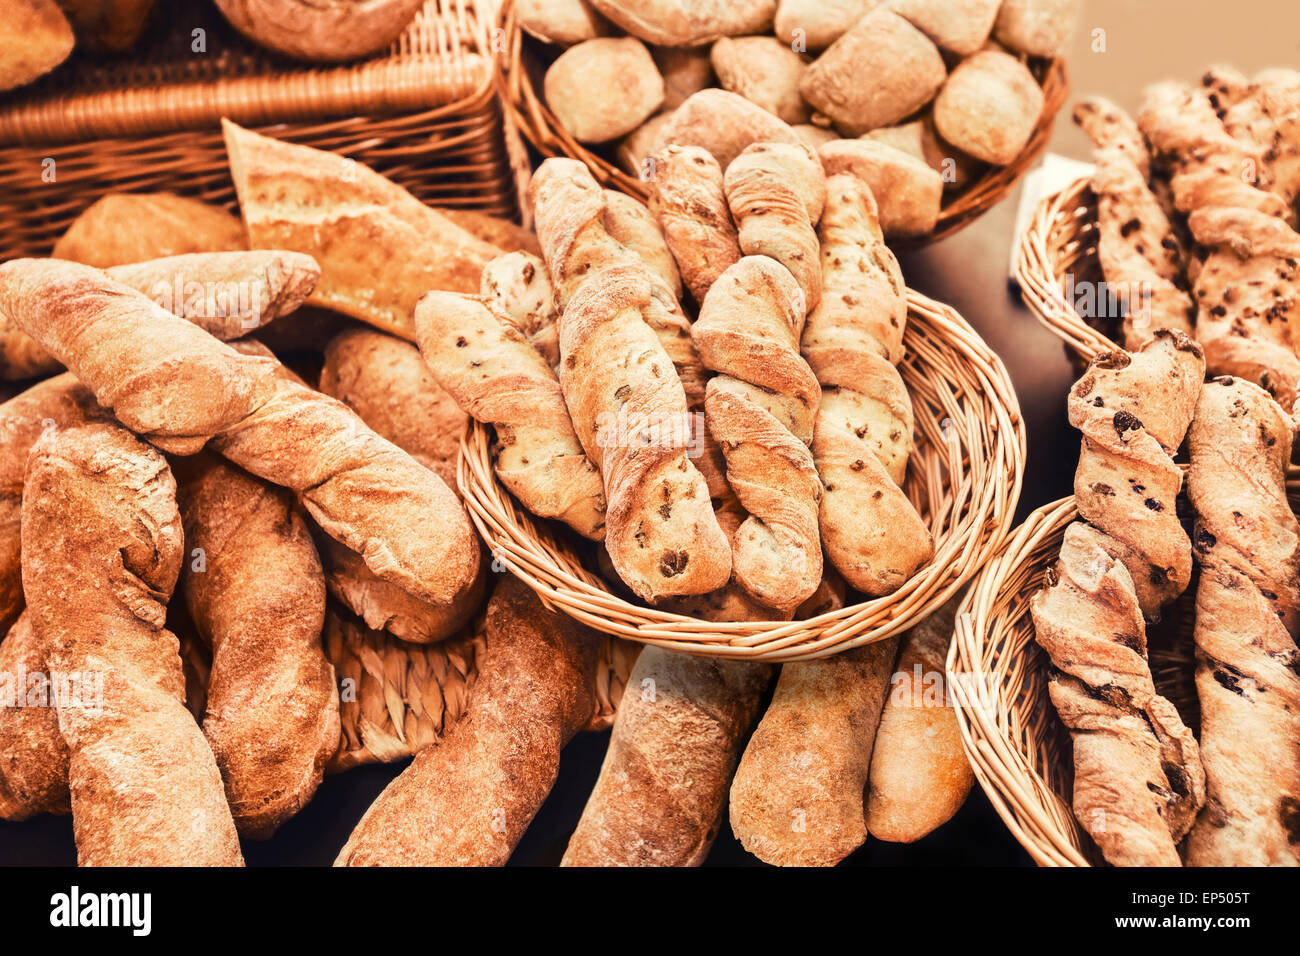 pile of french baguette - Stock Image